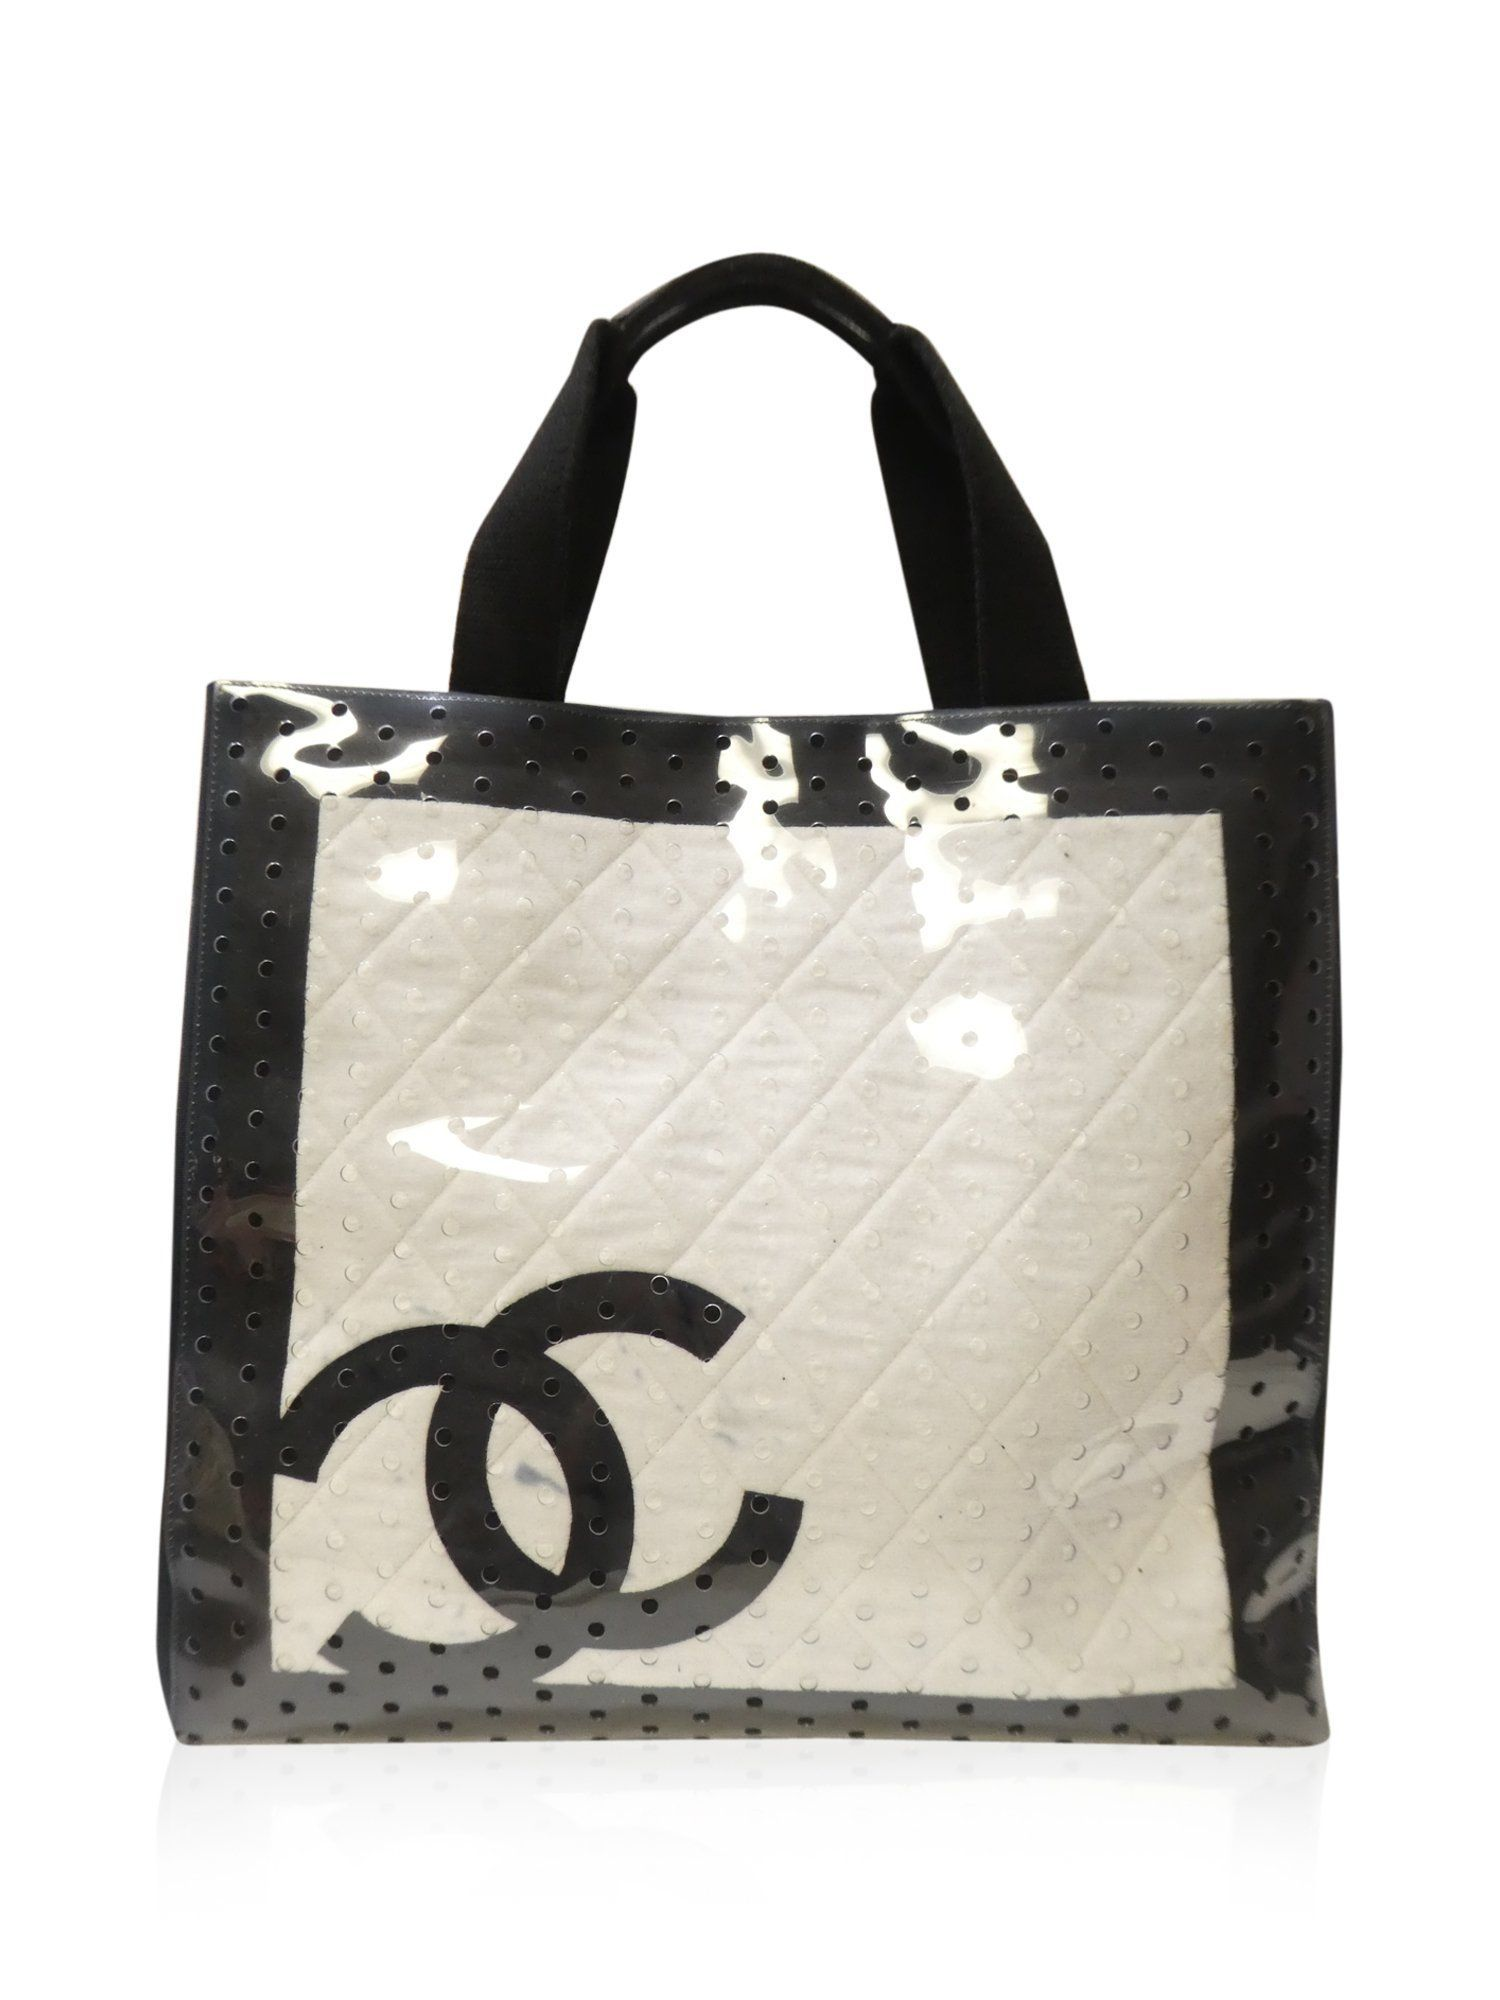 675d52b01cf8 Chanel White Black Canvas CC Vinyl Perforated Cruise Sport Tote Handbag